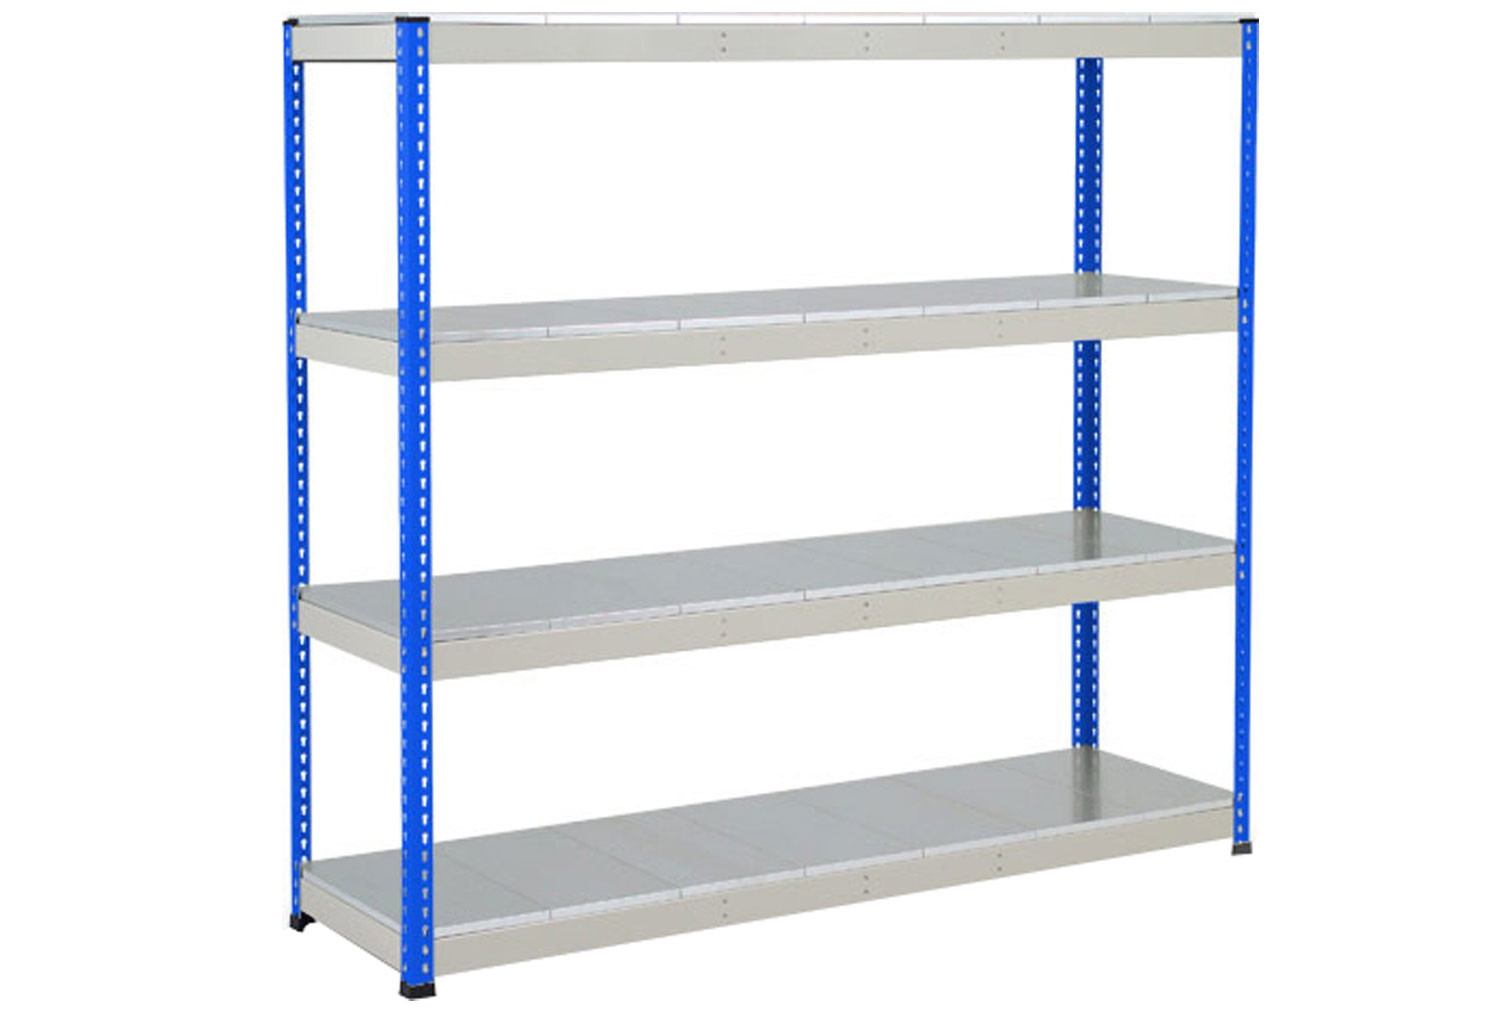 Rapid 1 Heavy Duty Shelving With 4 Galvanized Shelves 1525wx2440h (Blue/Grey)